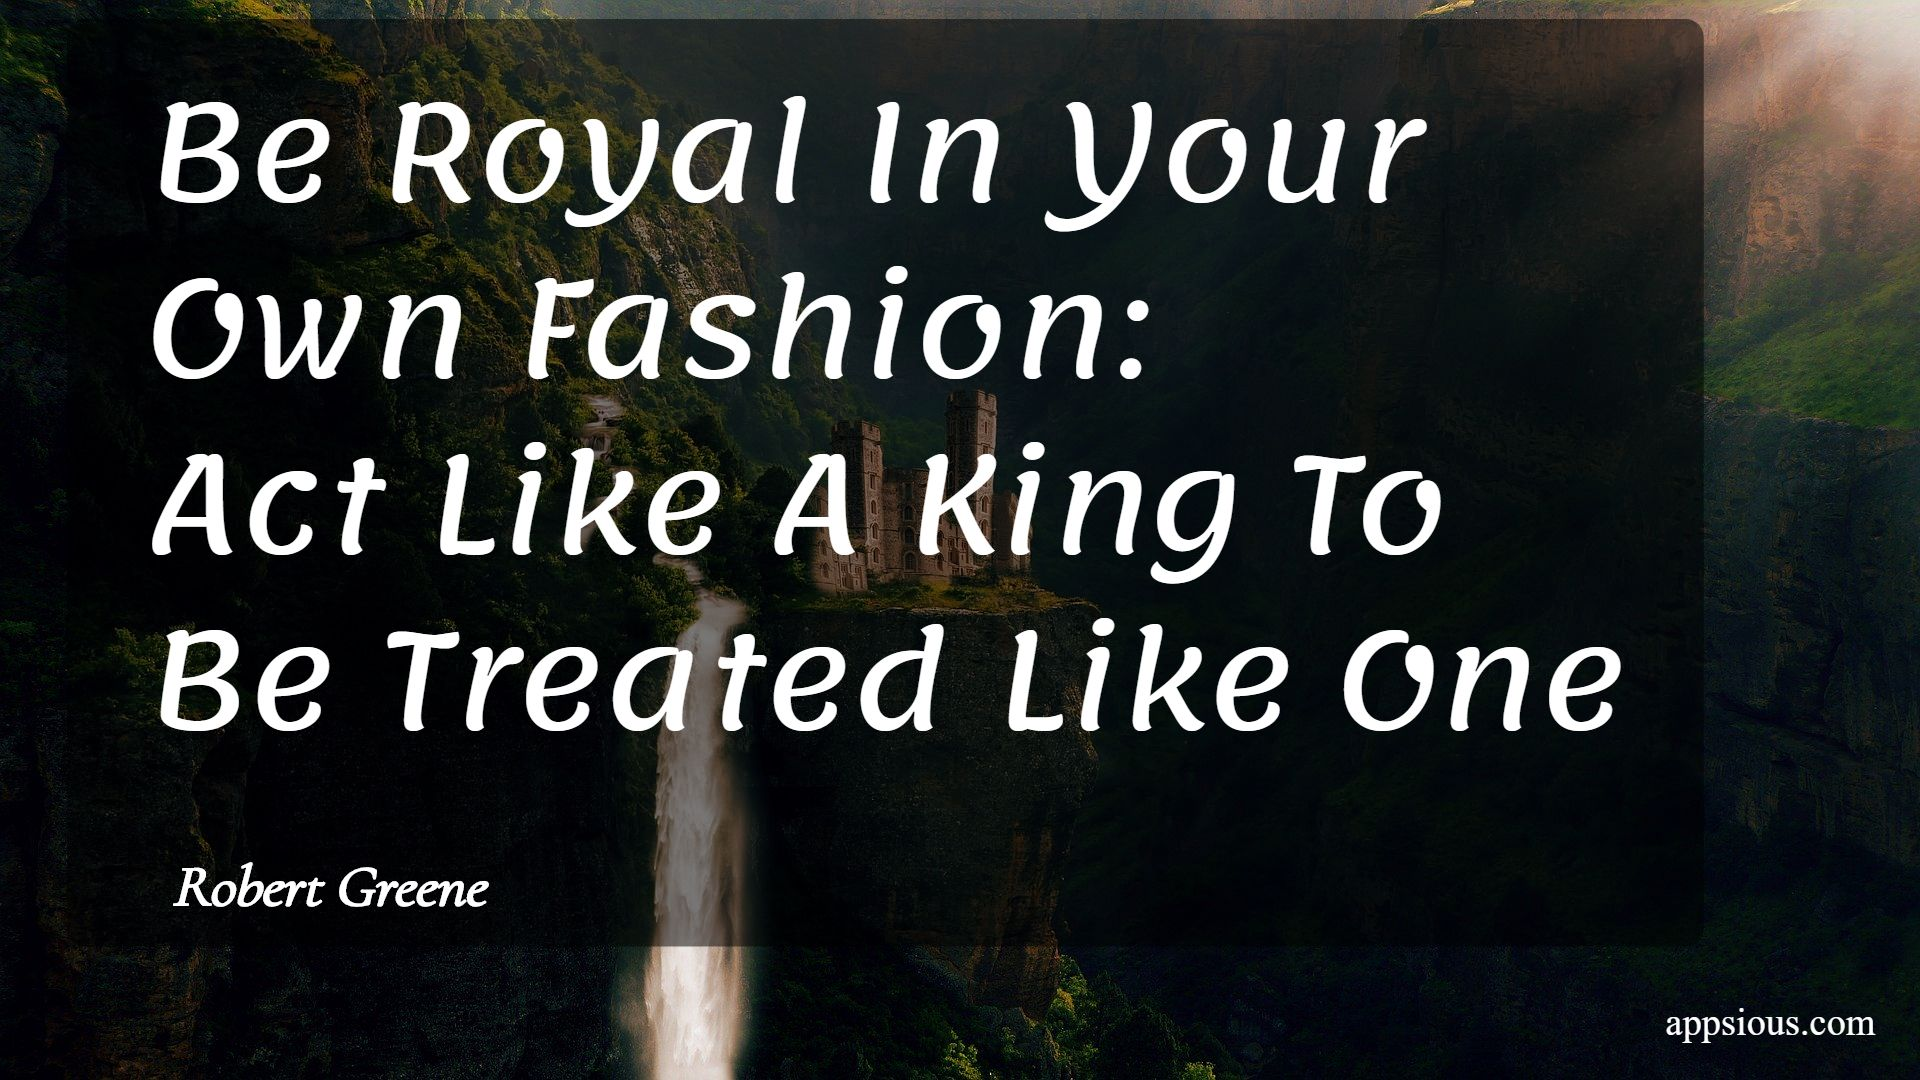 Be Royal In Your Own Fashion: Act Like A King To Be Treated Like One